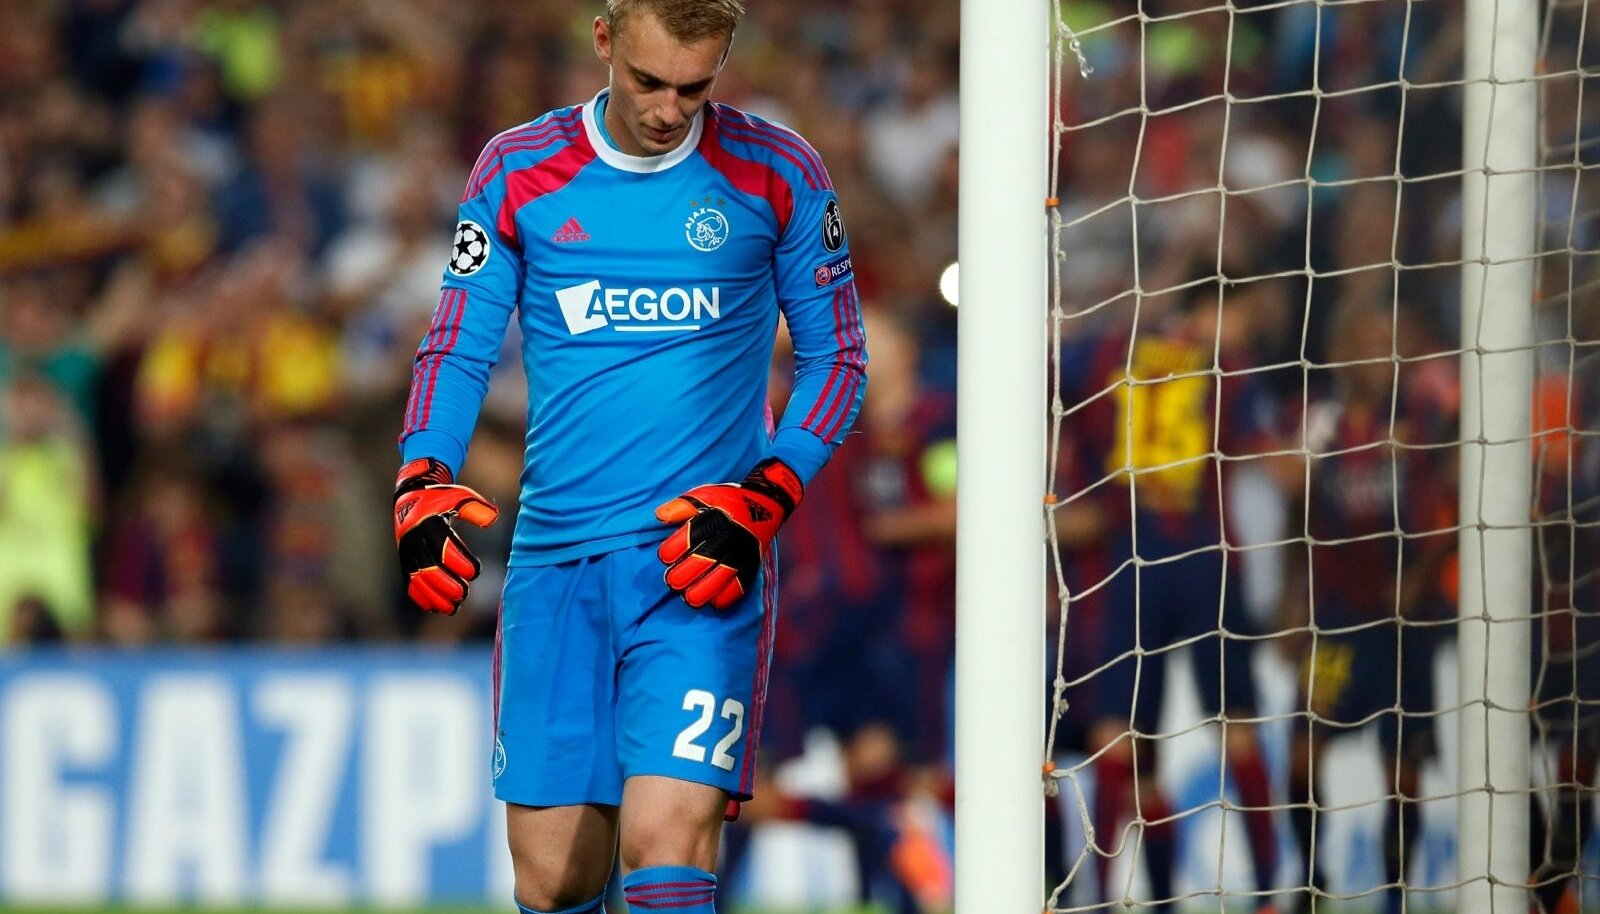 Ajax Amsterdam's goalkeeper Cillessen reacts after conceding a goal to Barcelona during their Champions League soccer match in Barcelona